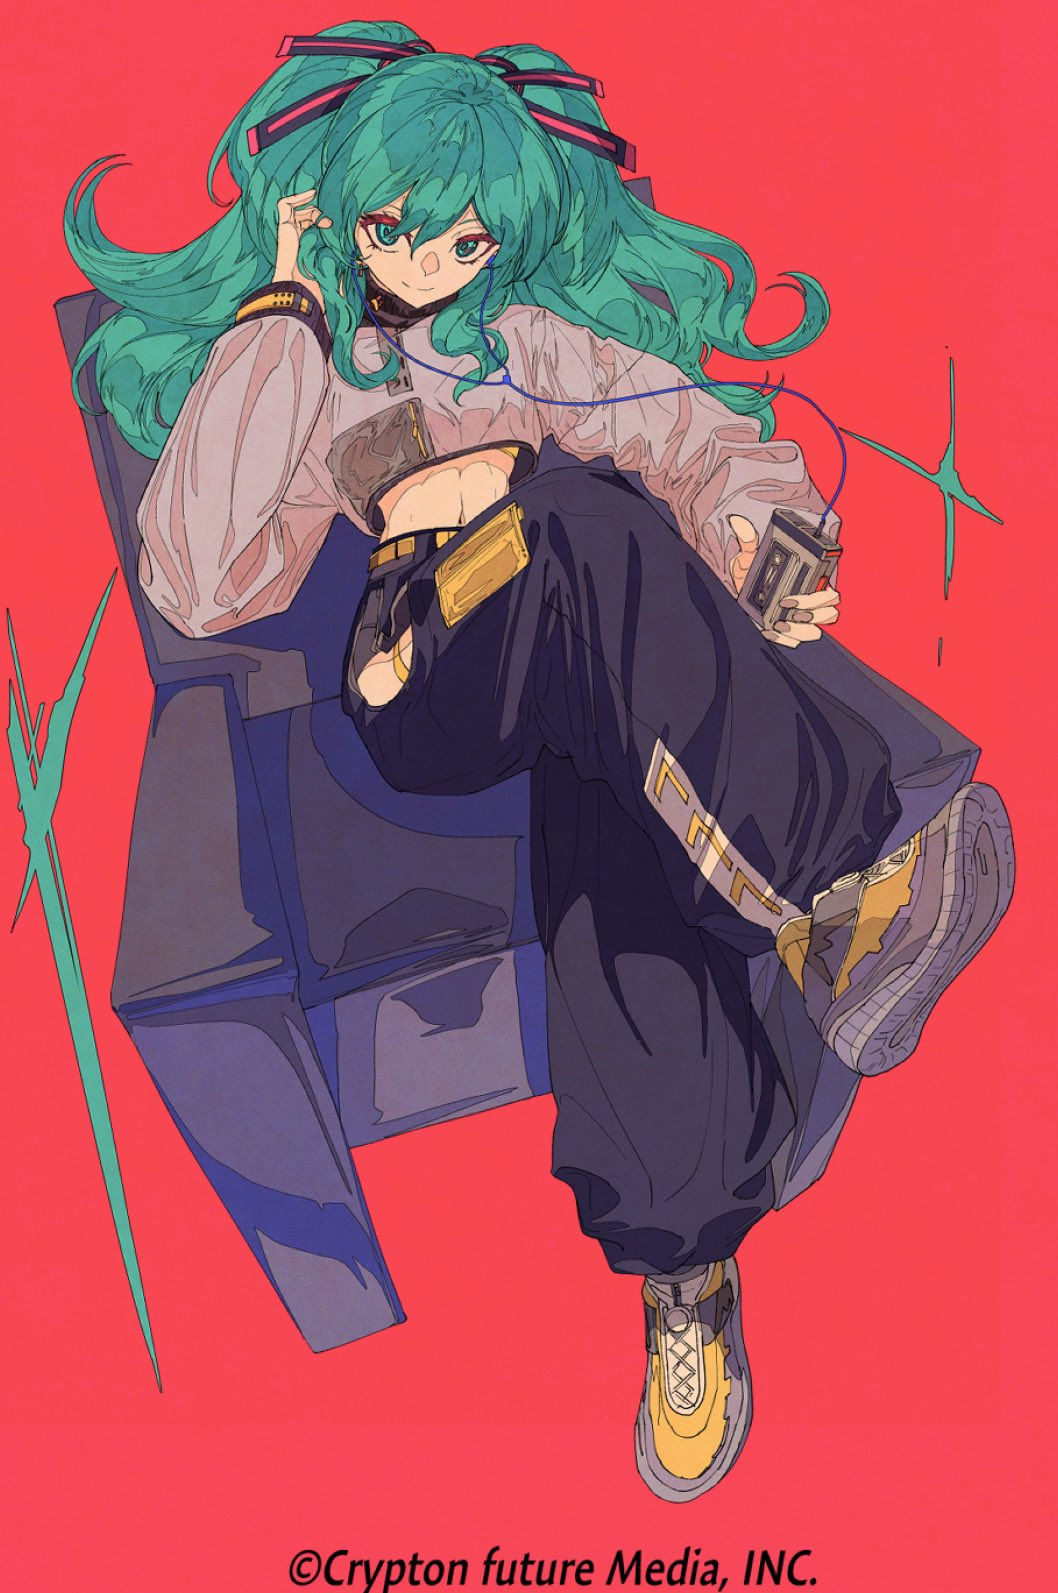 1girl alternate_costume aqua_eyes aqua_hair baggy_pants black_panther chair crop_top crossed_legs english_text flat_color full_body grey_shirt hairband hatsune_miku highres hip_vent kogecha_(coge_ch) ligne_claire long_hair long_sleeves looking_at_viewer midriff navel original panther pants red_background shirt shoes simple_background solo vocaloid